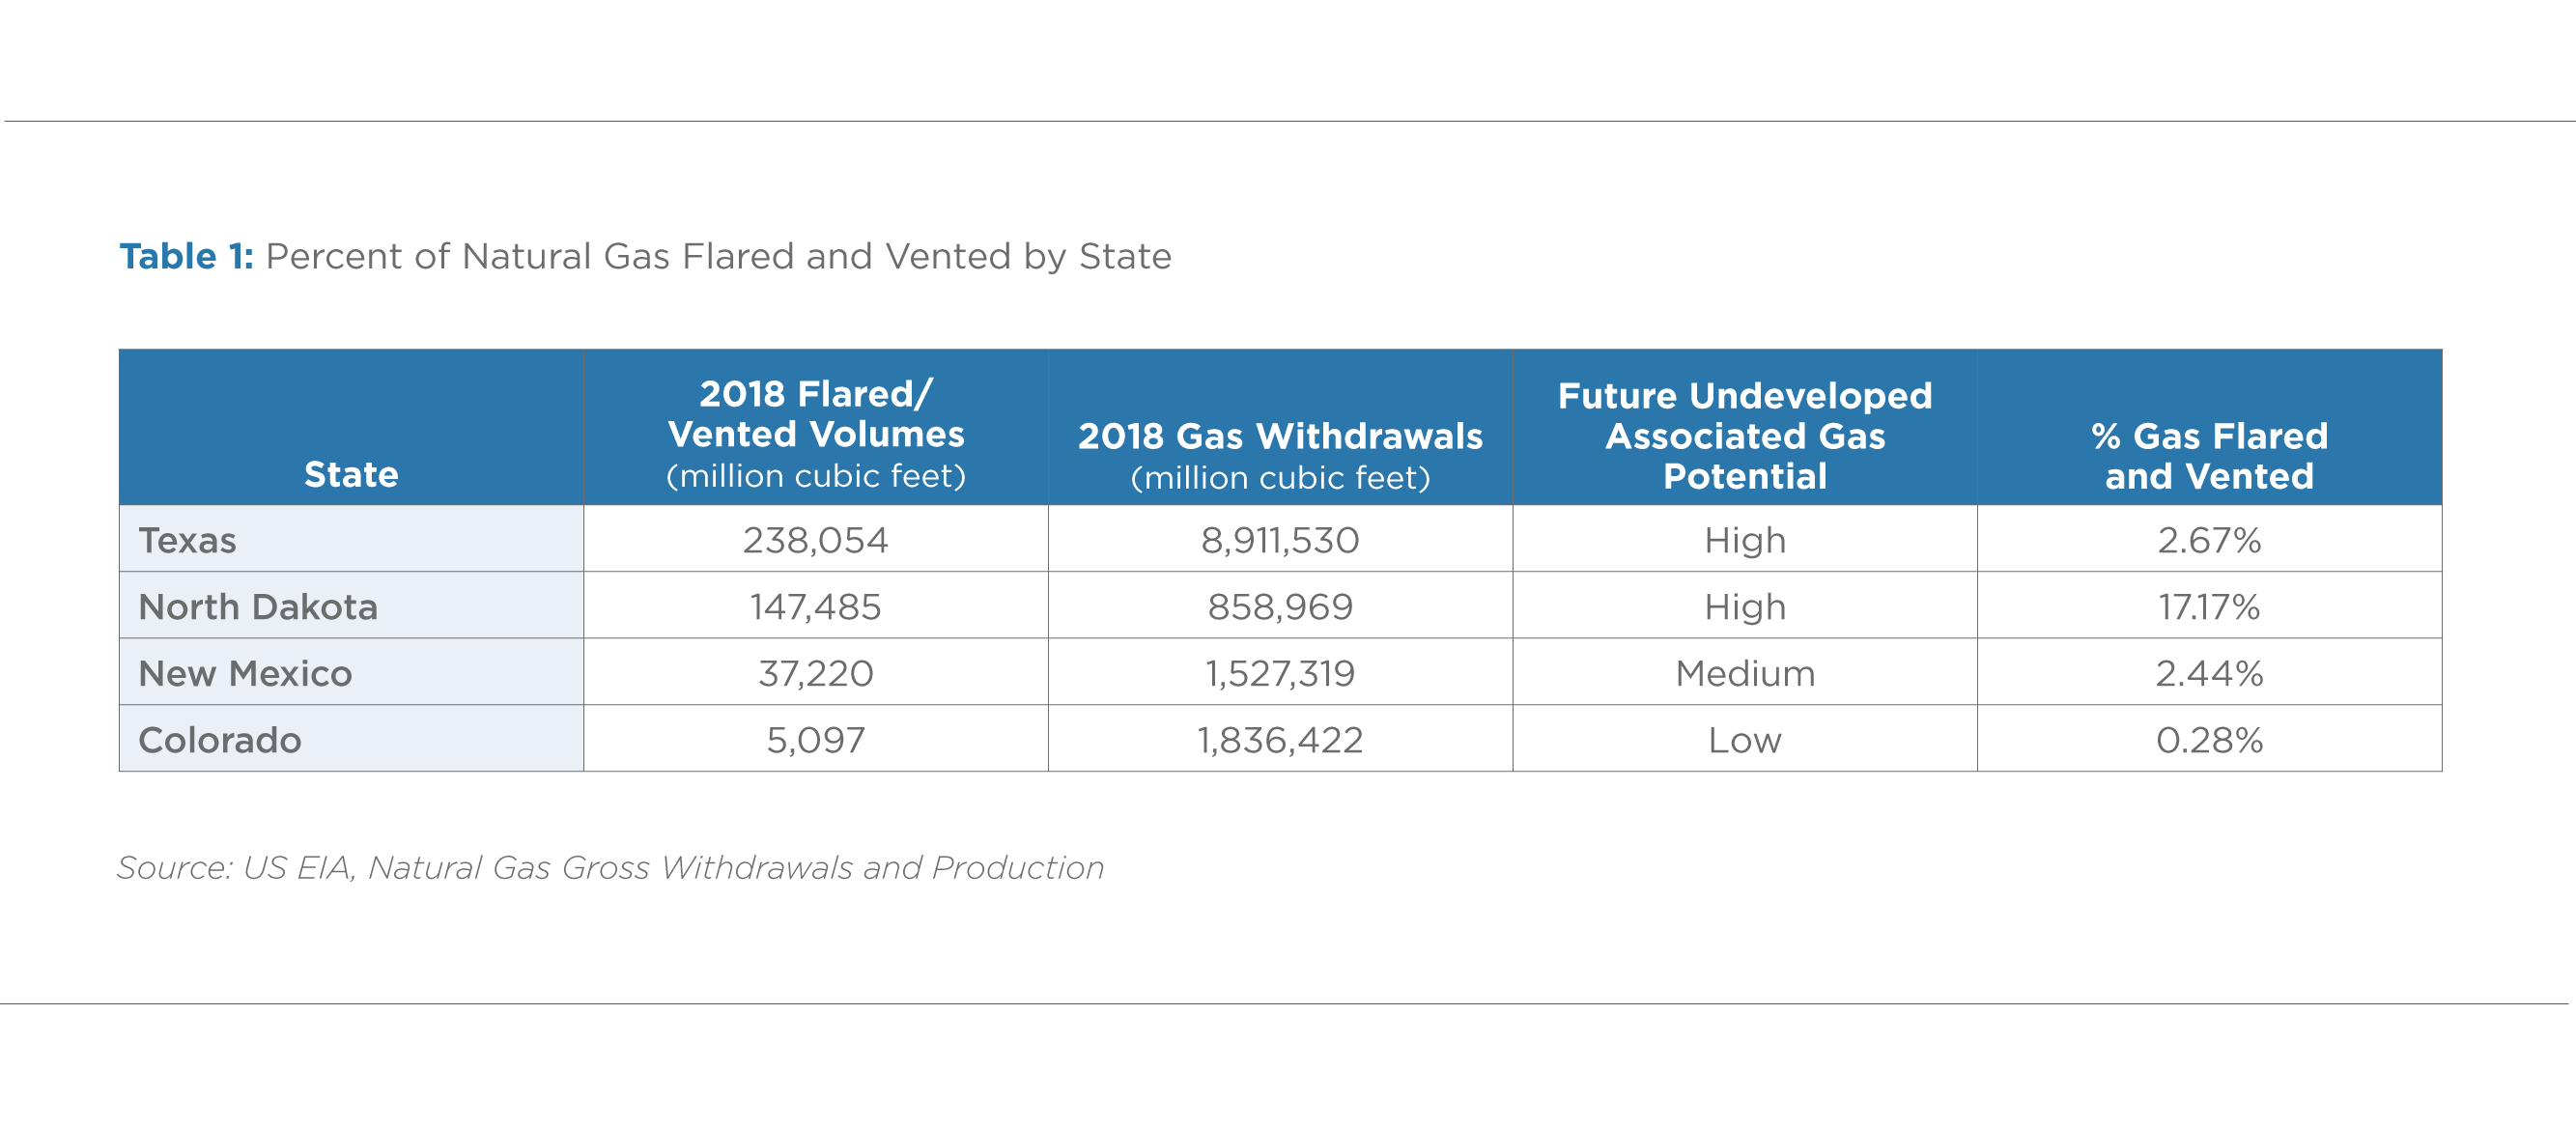 Table 1: Percent of Natural Gas Flared and Vented by State